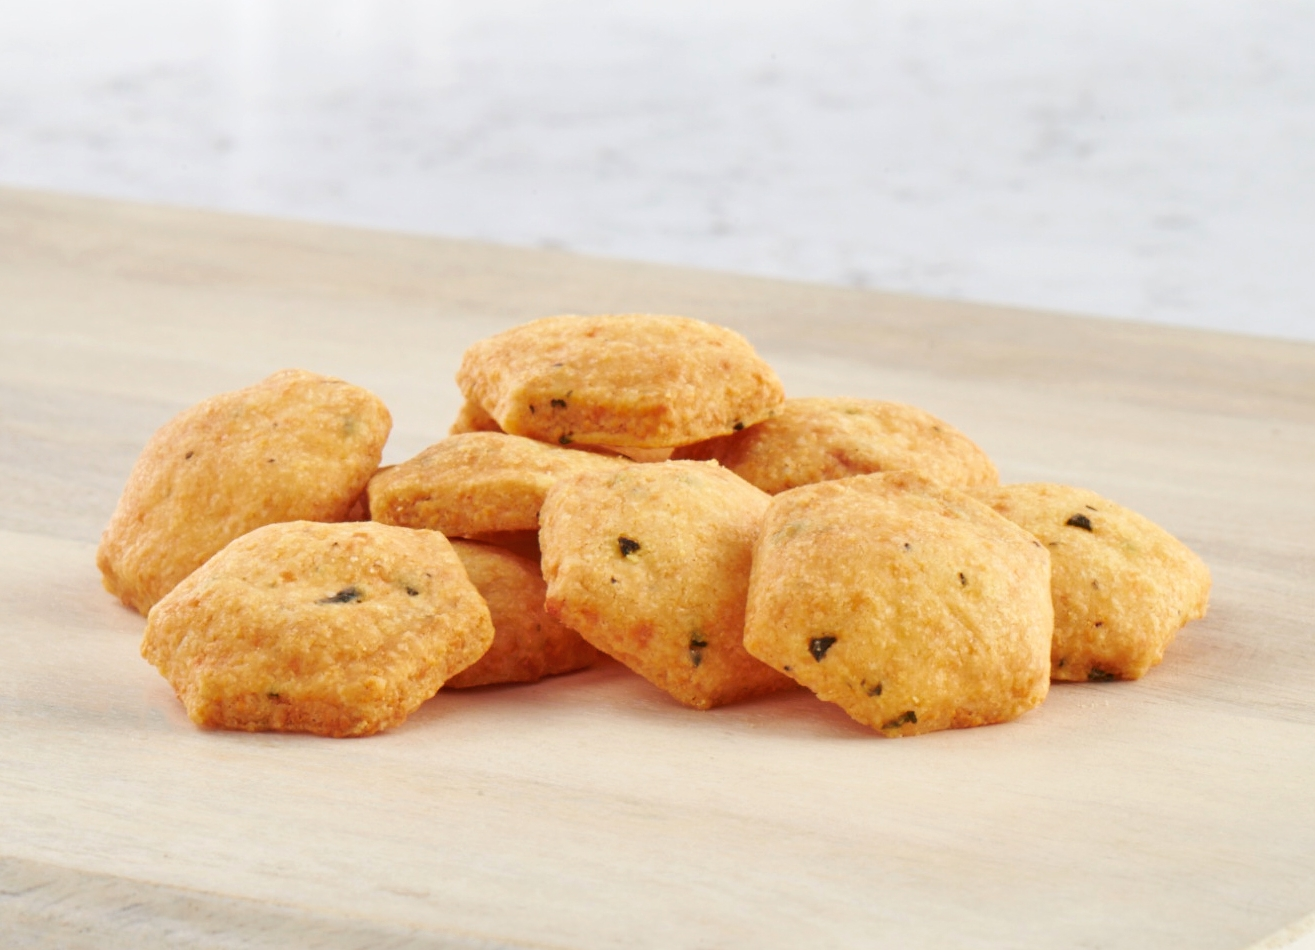 CHEDDAR CRACKERS   A delicate, savory cracker baked with premium herbs, spices, and cheddar cheese that's deliciously unbelievable!  View Ingredients